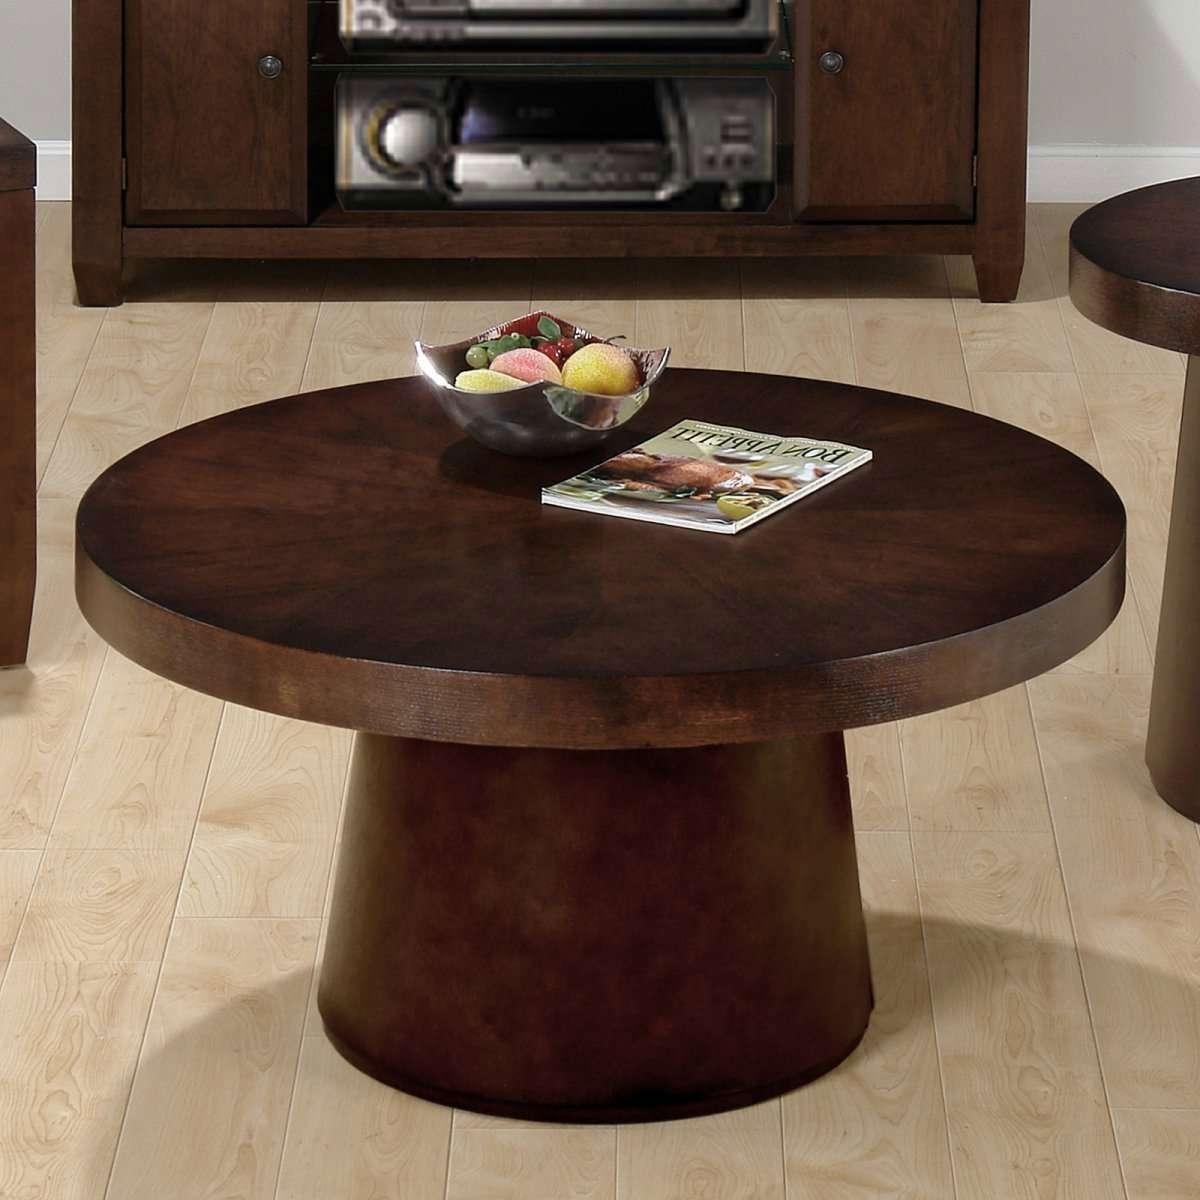 10 Best Small Round Coffee Tables For Round Coffee Tables Round For 2018 Small Circular Coffee Table (Gallery 3 of 20)